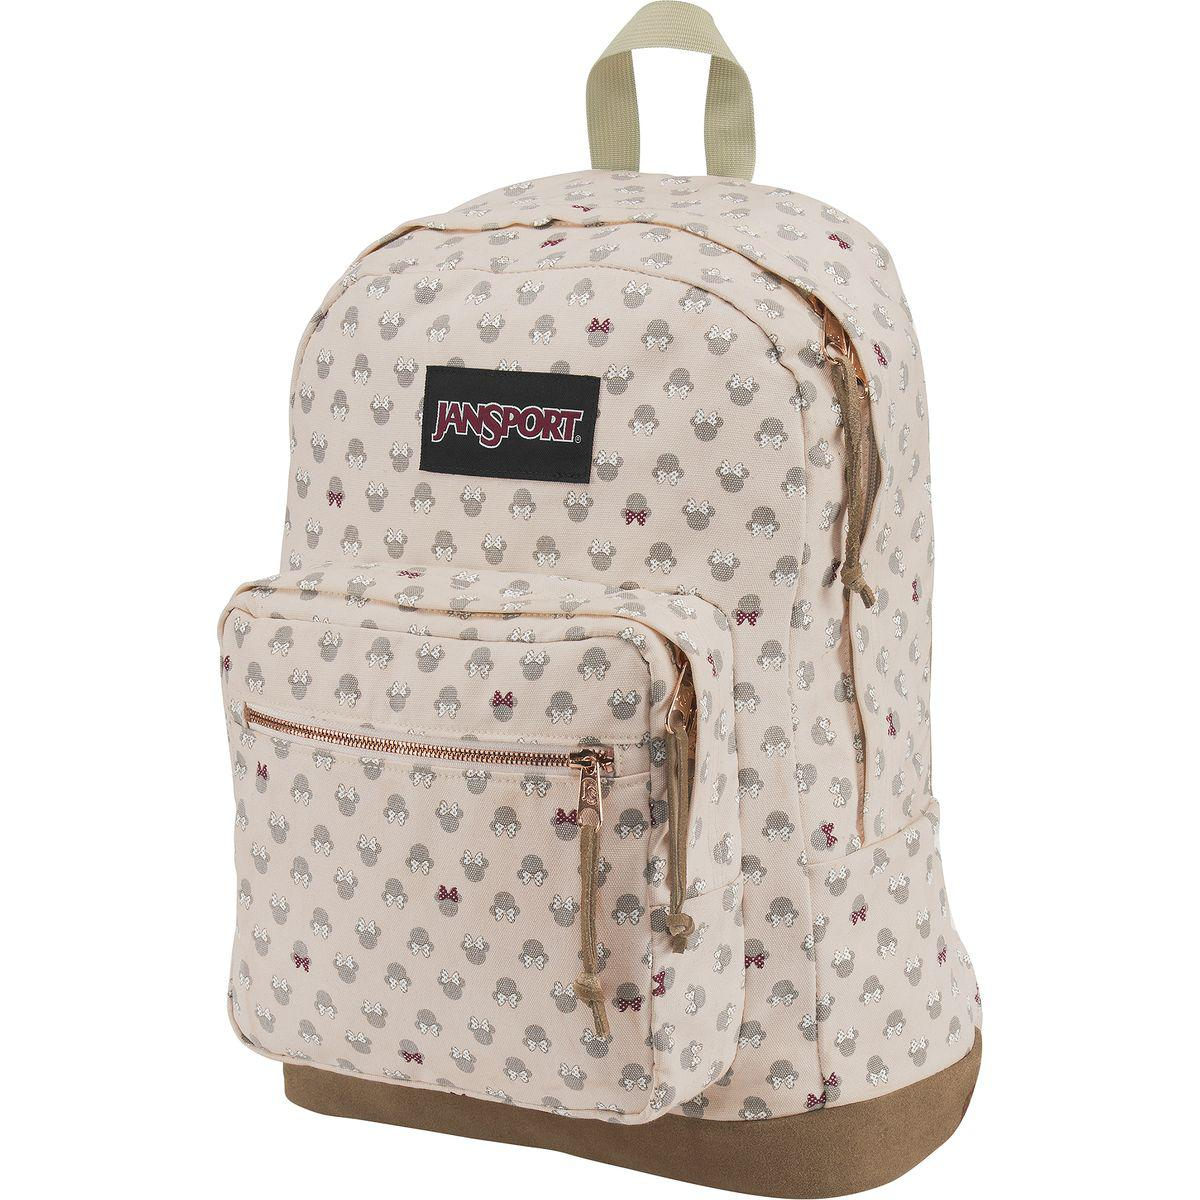 63ec71e09 Jansport Disney Right Pack Luxe Minnie Expressions 31l Backpack - Lyst